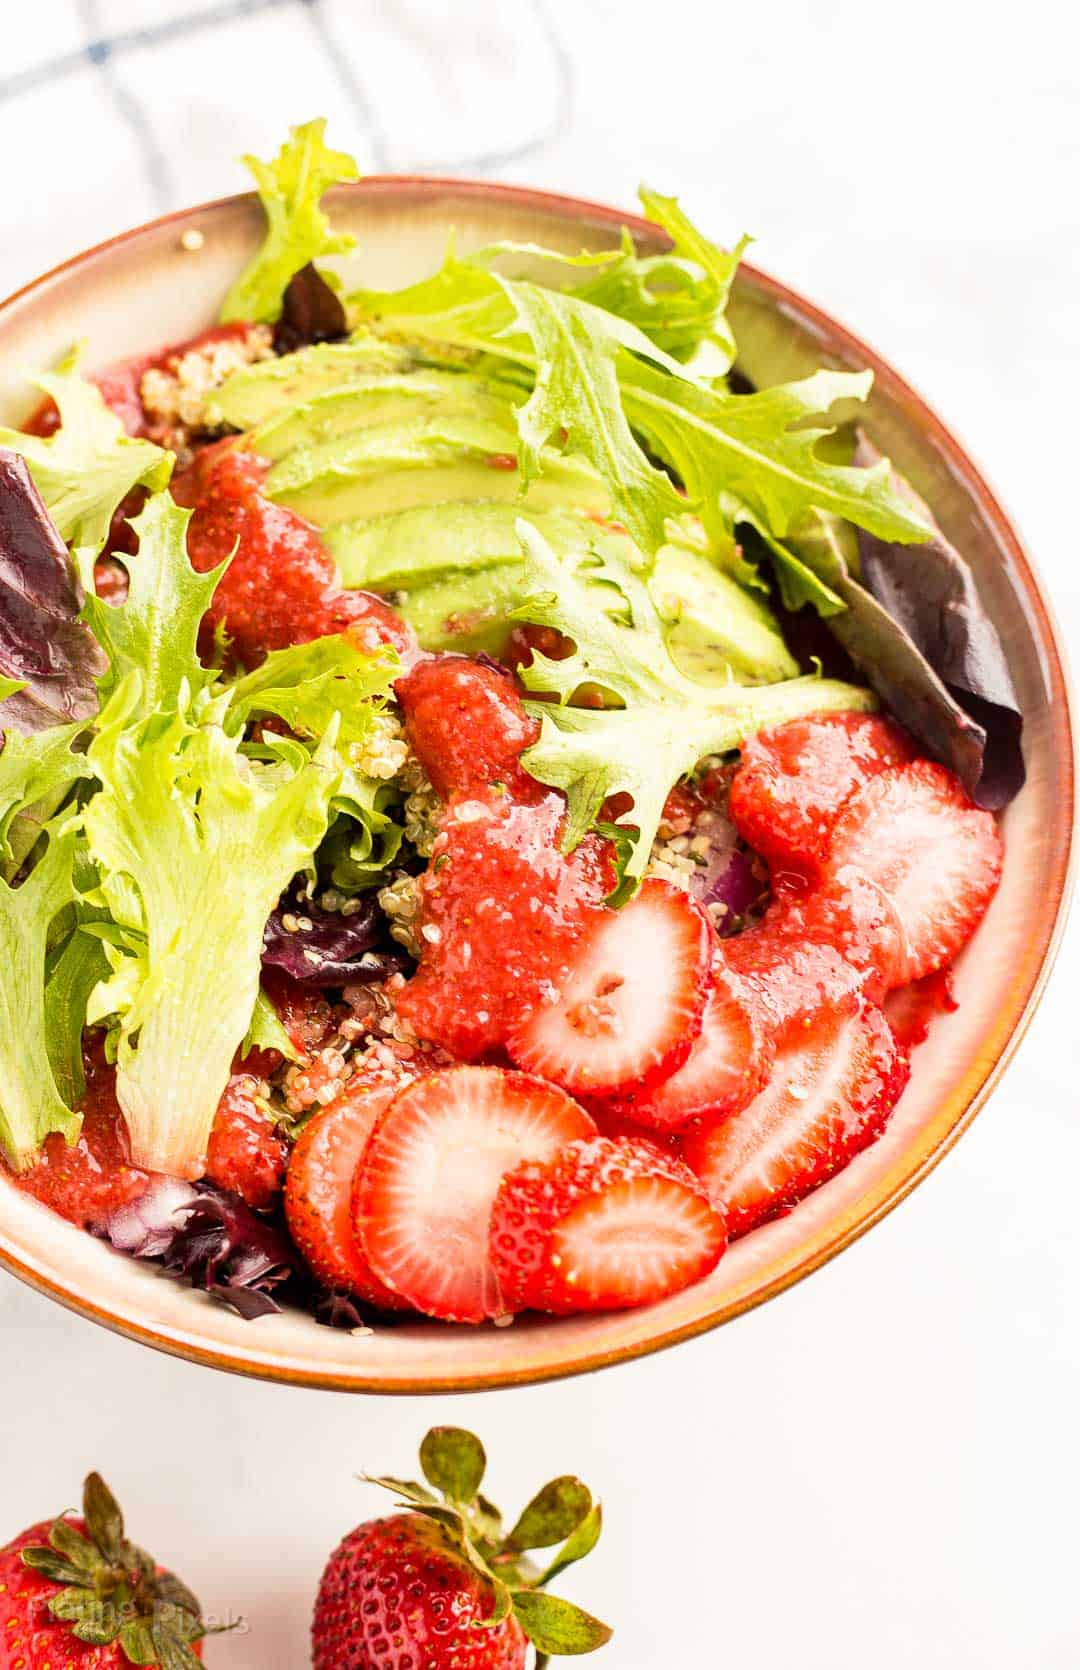 Prepared Summer Strawberry Salad in a bowl